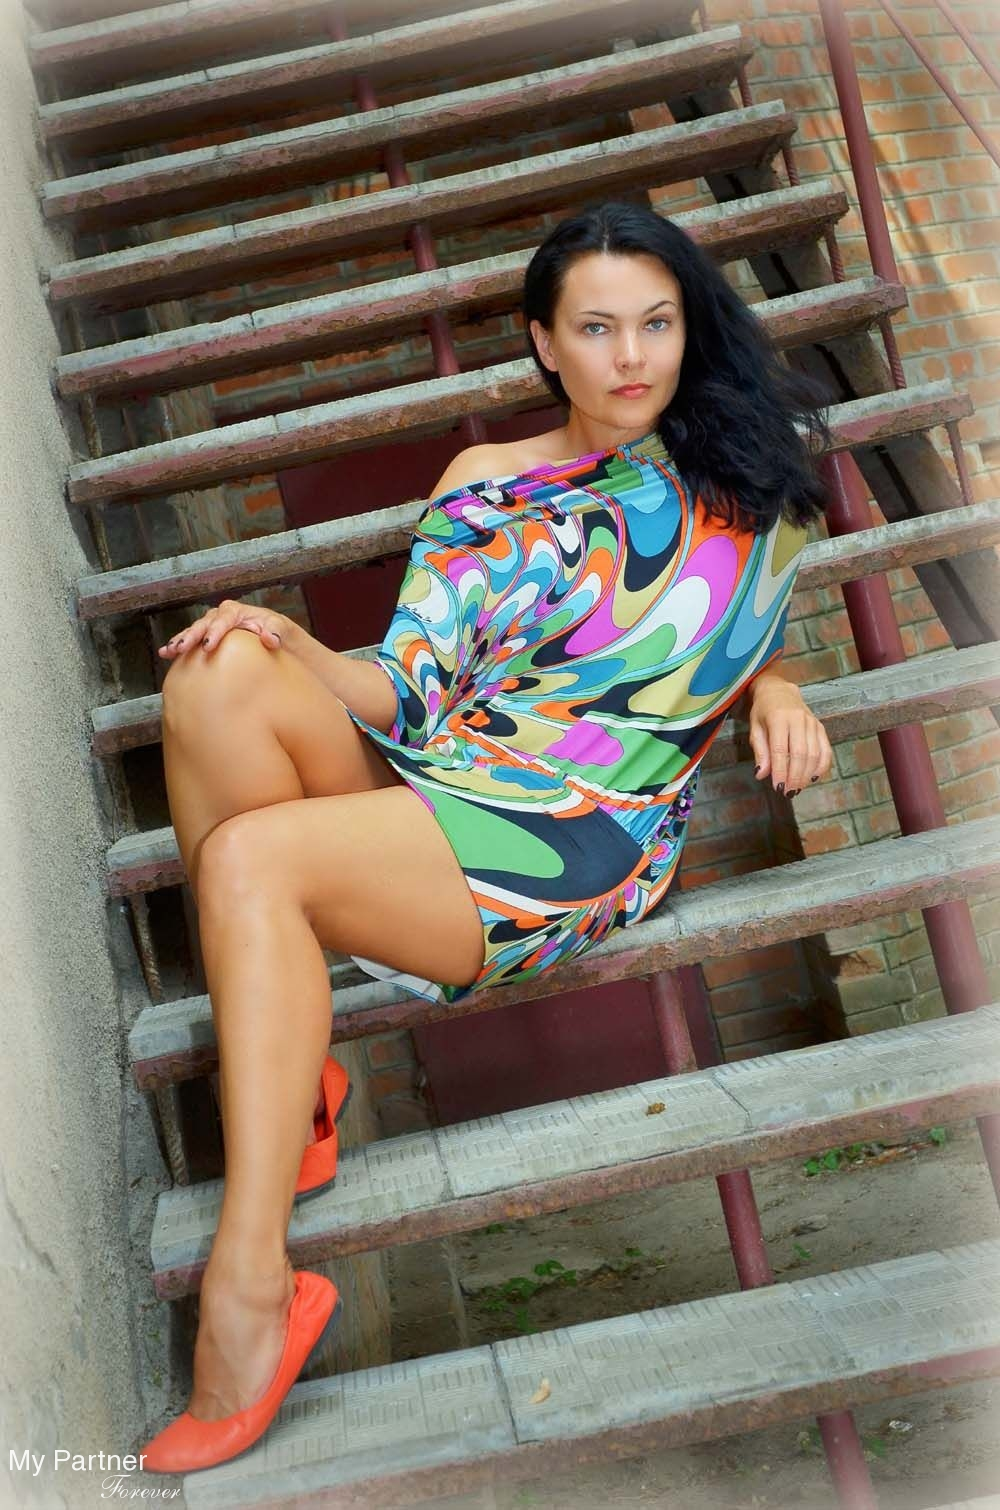 Datingsite to Meet Single Ukrainian Girl Olga from Kharkov, Ukraine